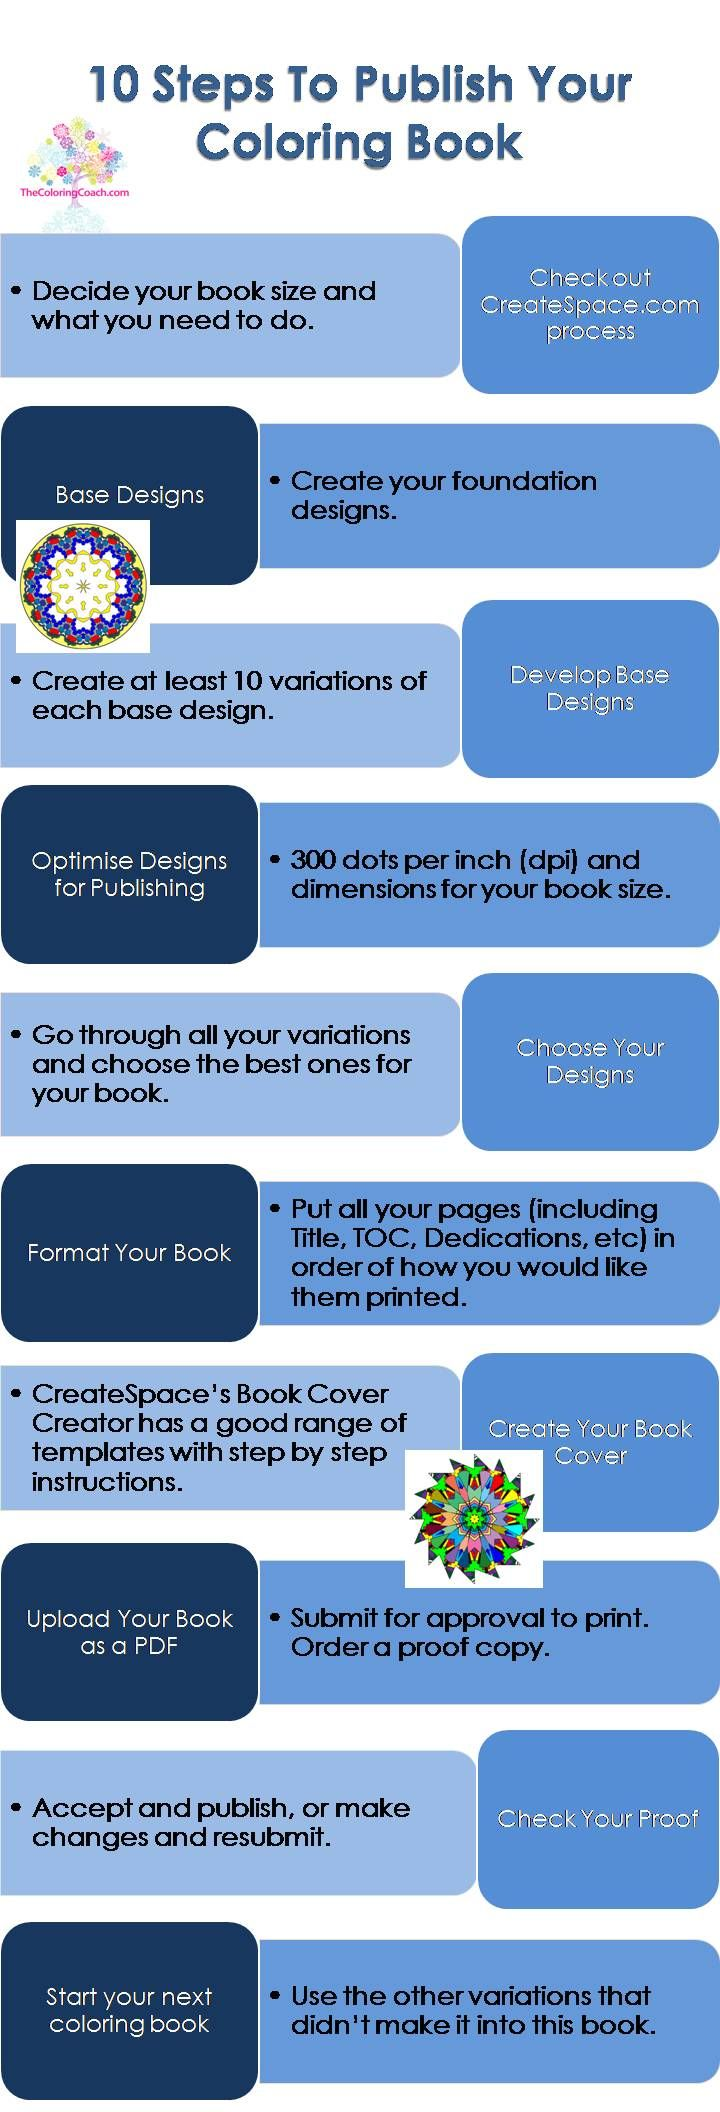 10 Steps To Self Publish Your Coloring Book On Createspace Coloring Books Publishing Self Publishing